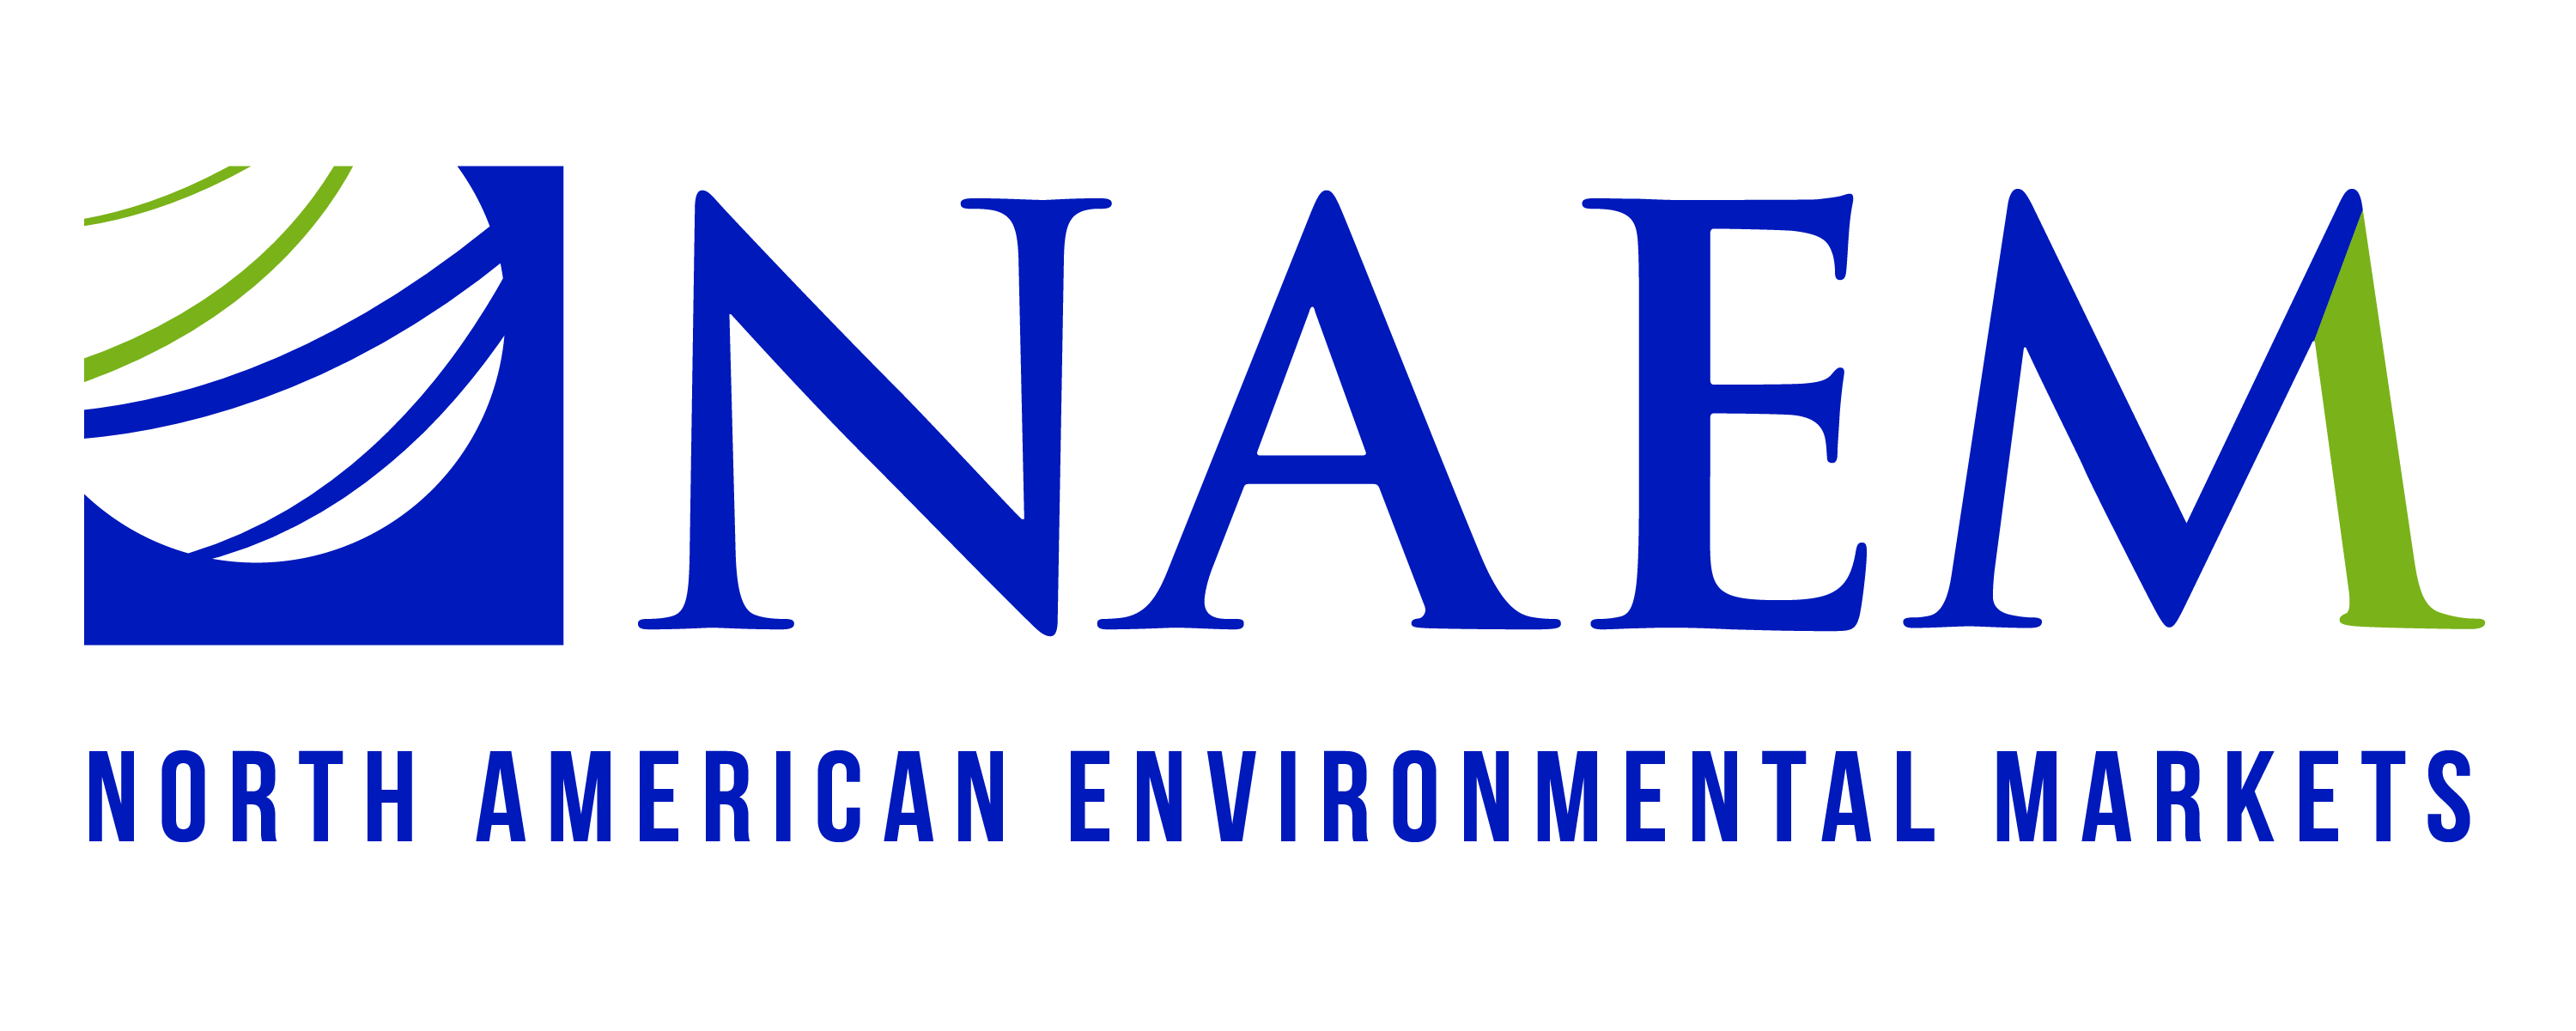 North American Environmental Markets